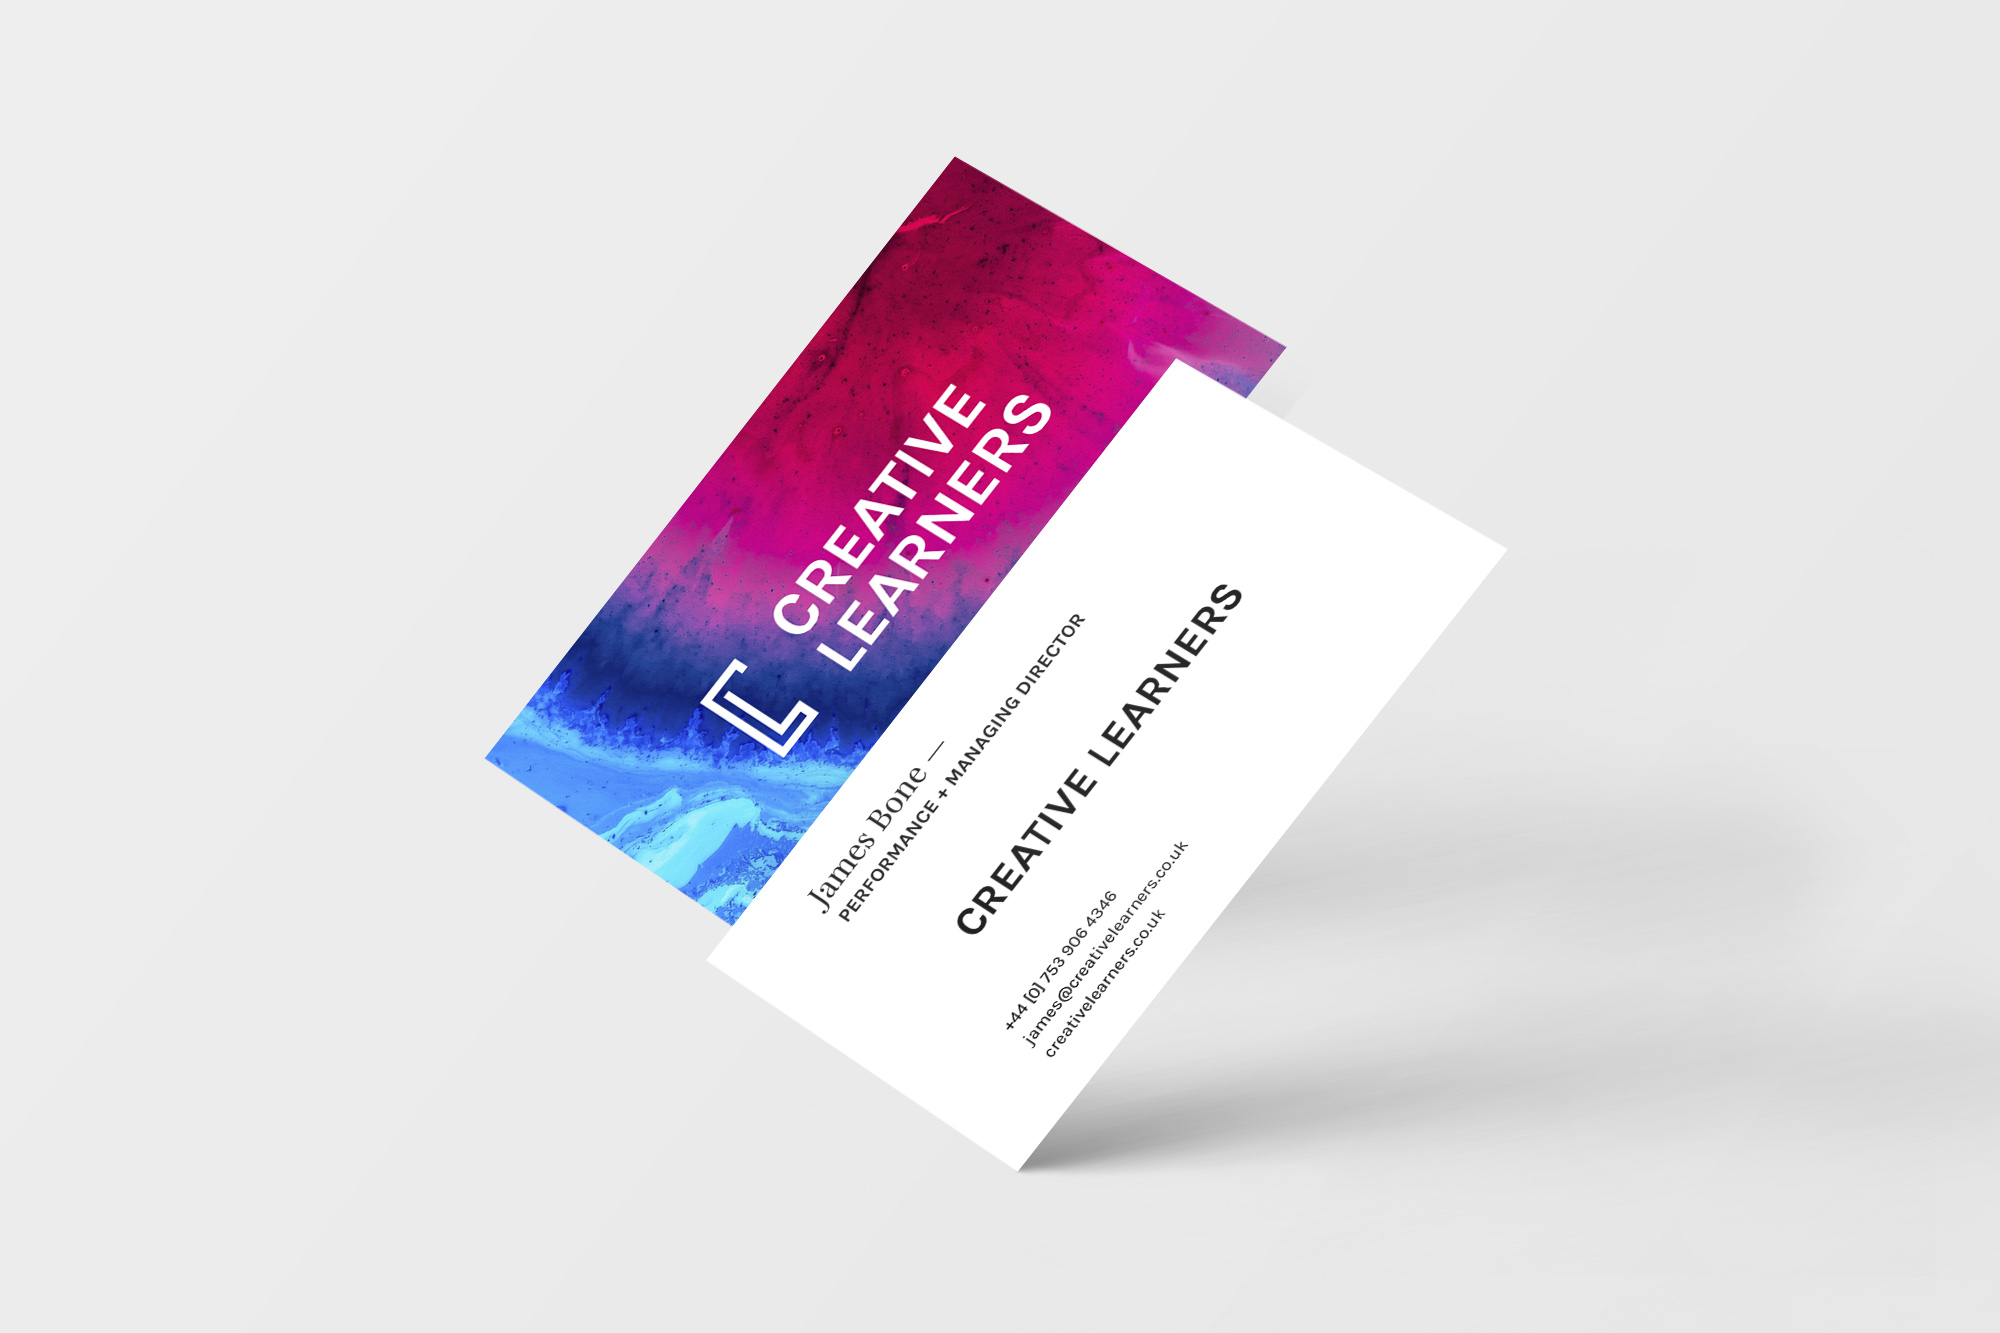 creative-learners-bus-cards-by-also-agency.jpg